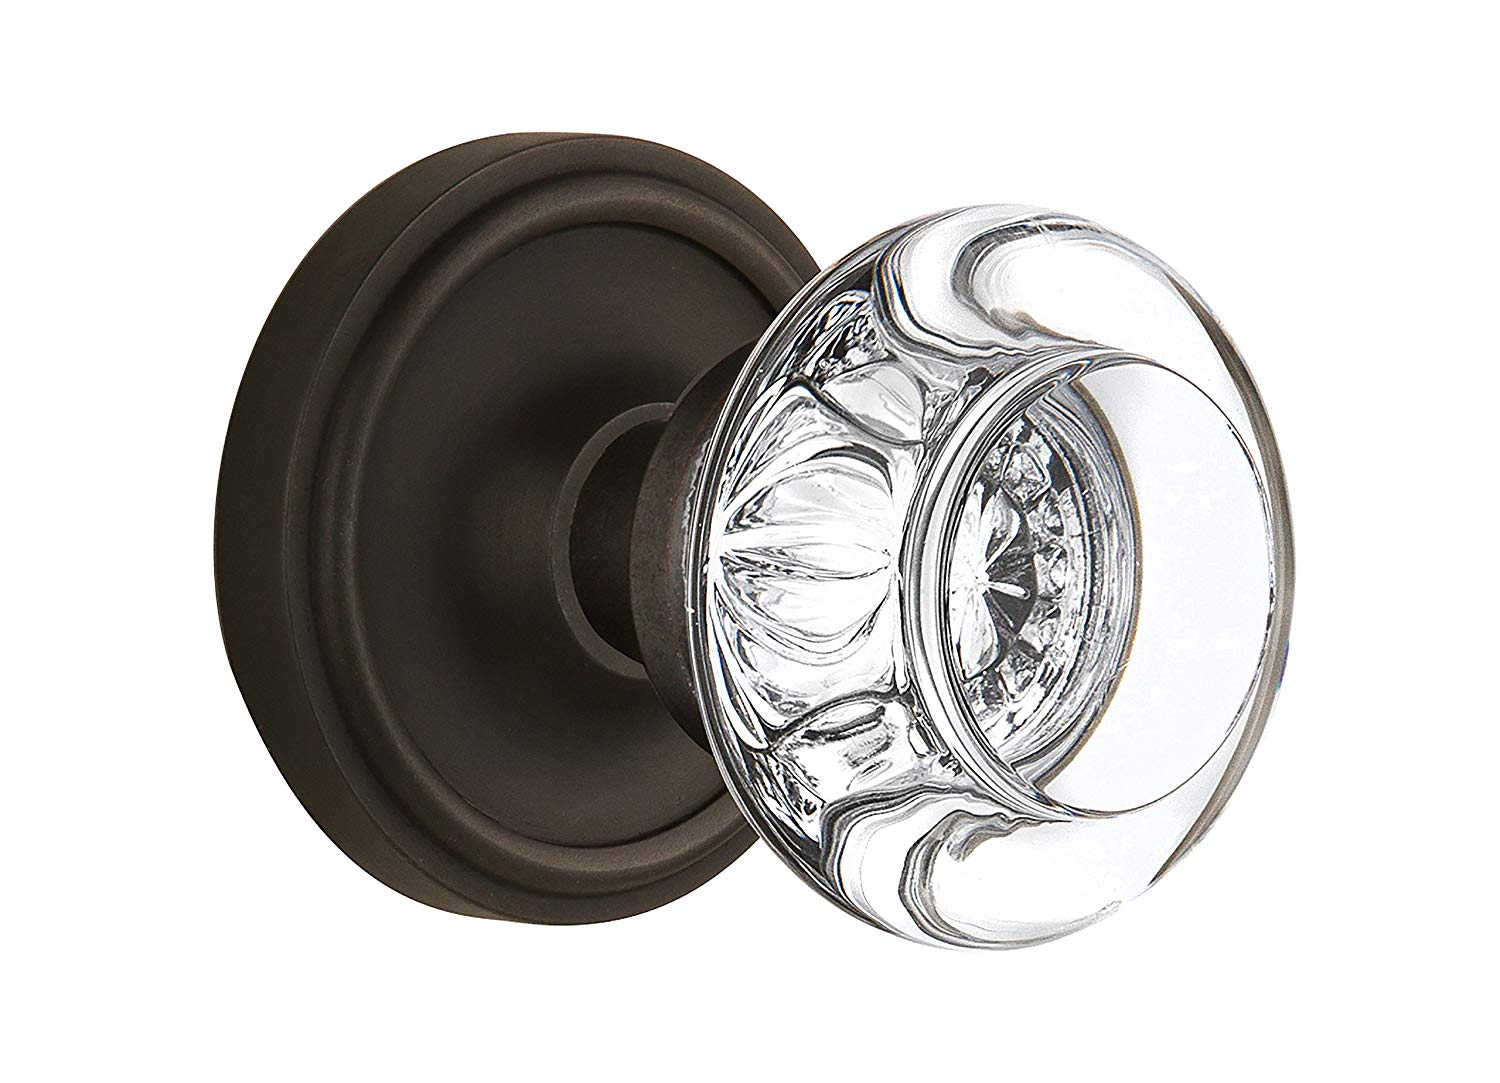 Nostalgic Warehouse Classic Rosette with Round Clear Crystal Glass Knob, Single Dummy, Oil Rubbed Bronze